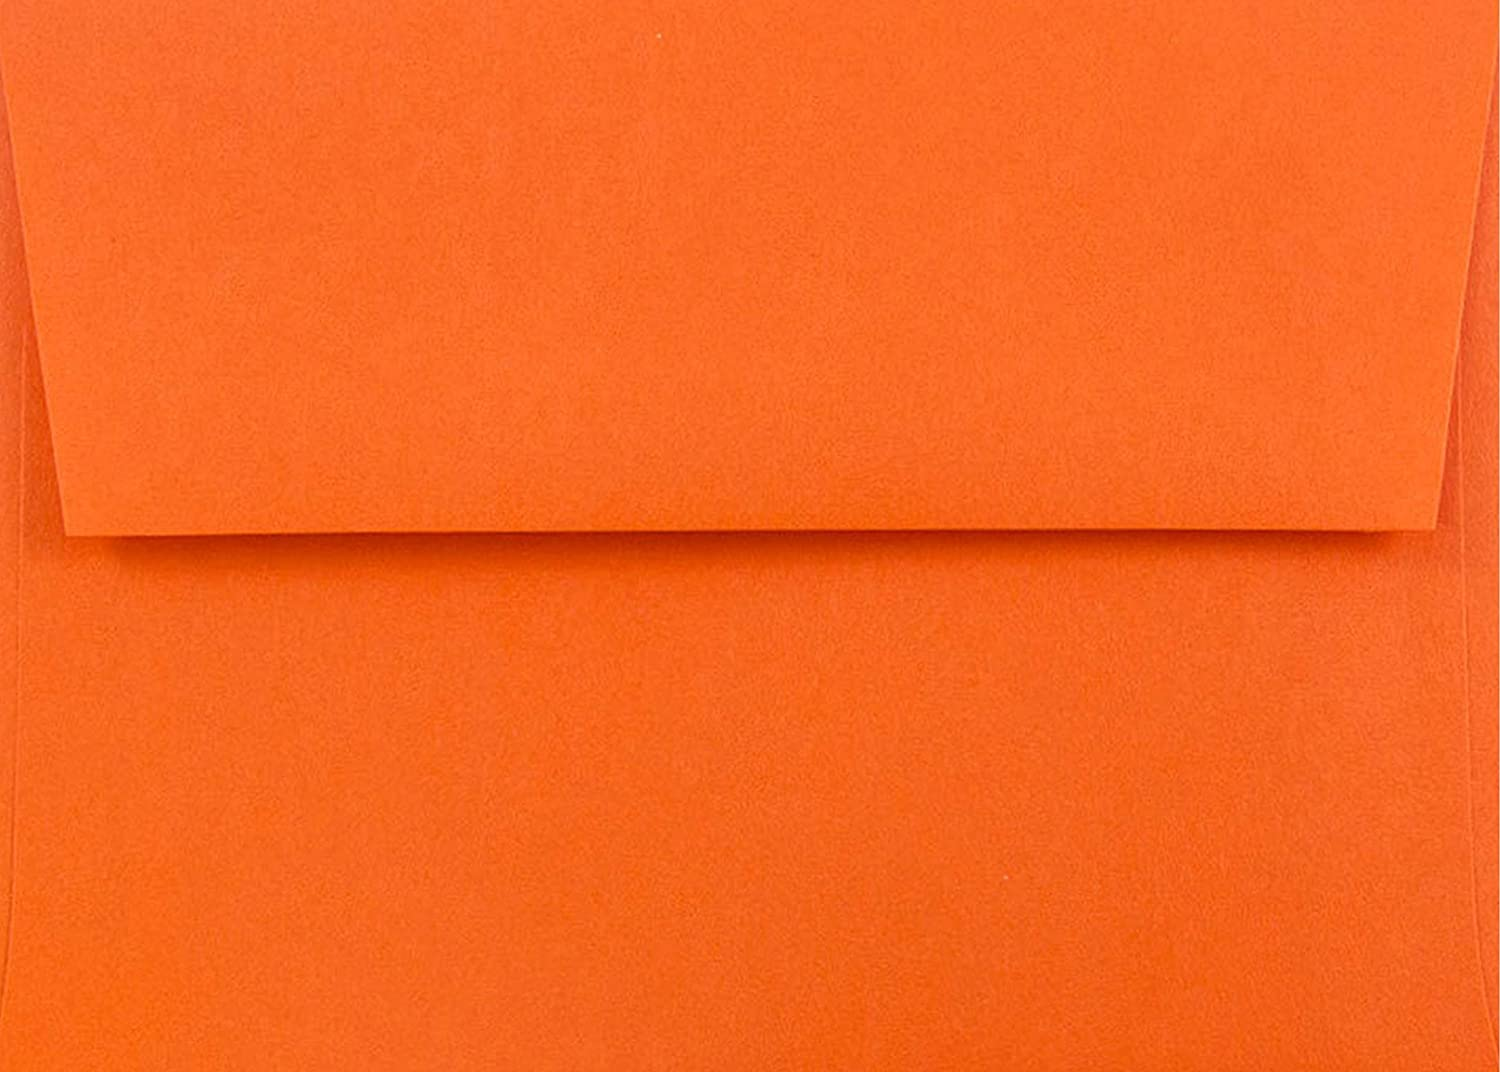 Pumpkin New York Mall Orange 50 Boxed Manufacturer direct delivery A2 4-3 8 Envelopes for 4-1 X x 5-3 4